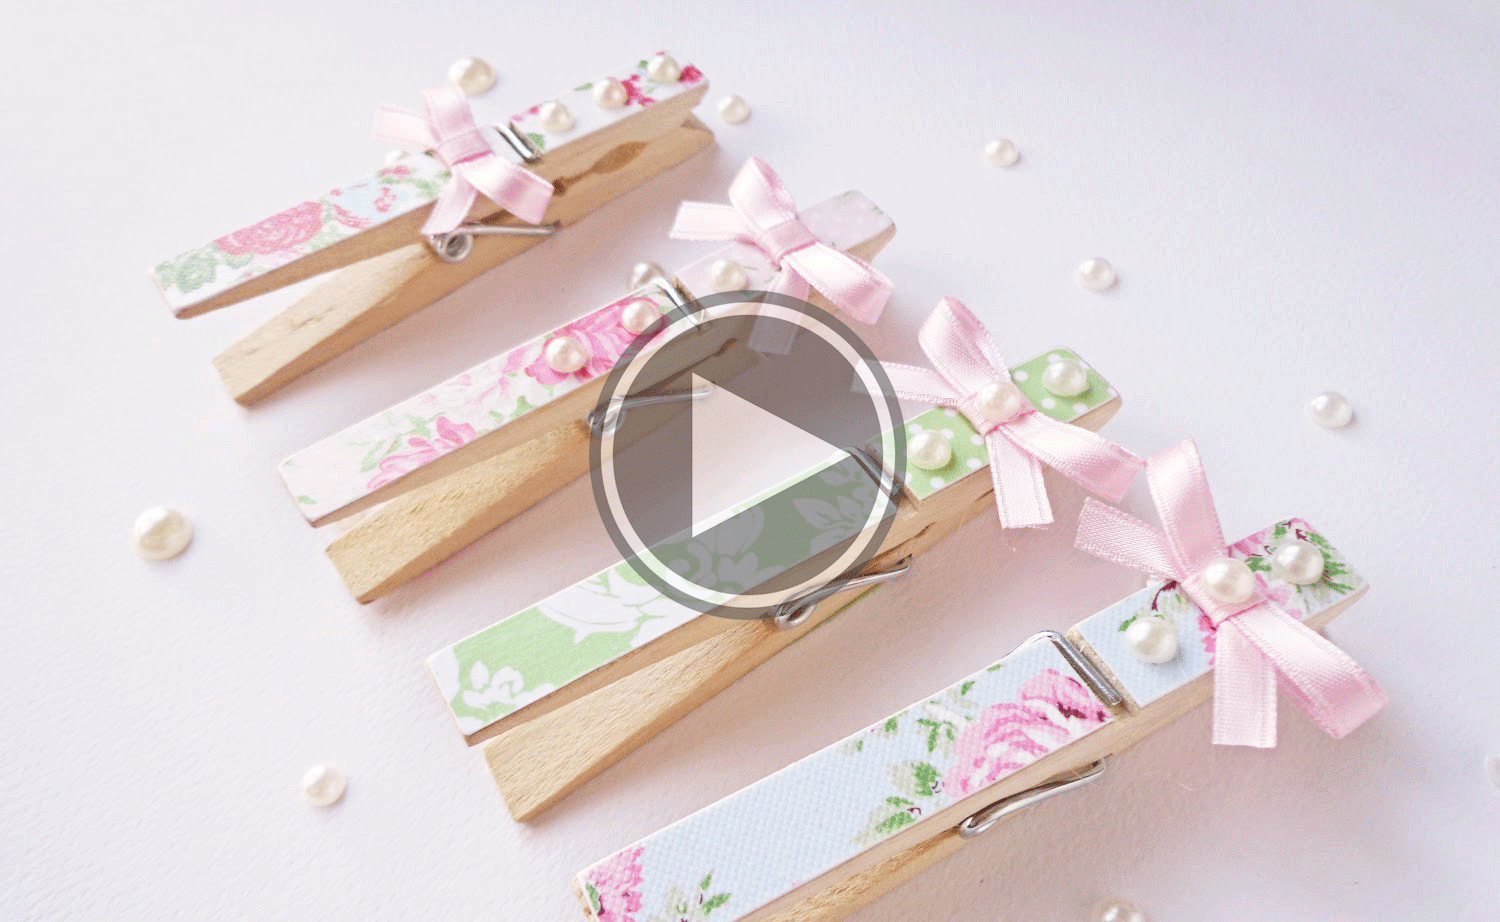 Come decorare le mollette di legno in stile shabby chic for Decorare stanza shabby chic